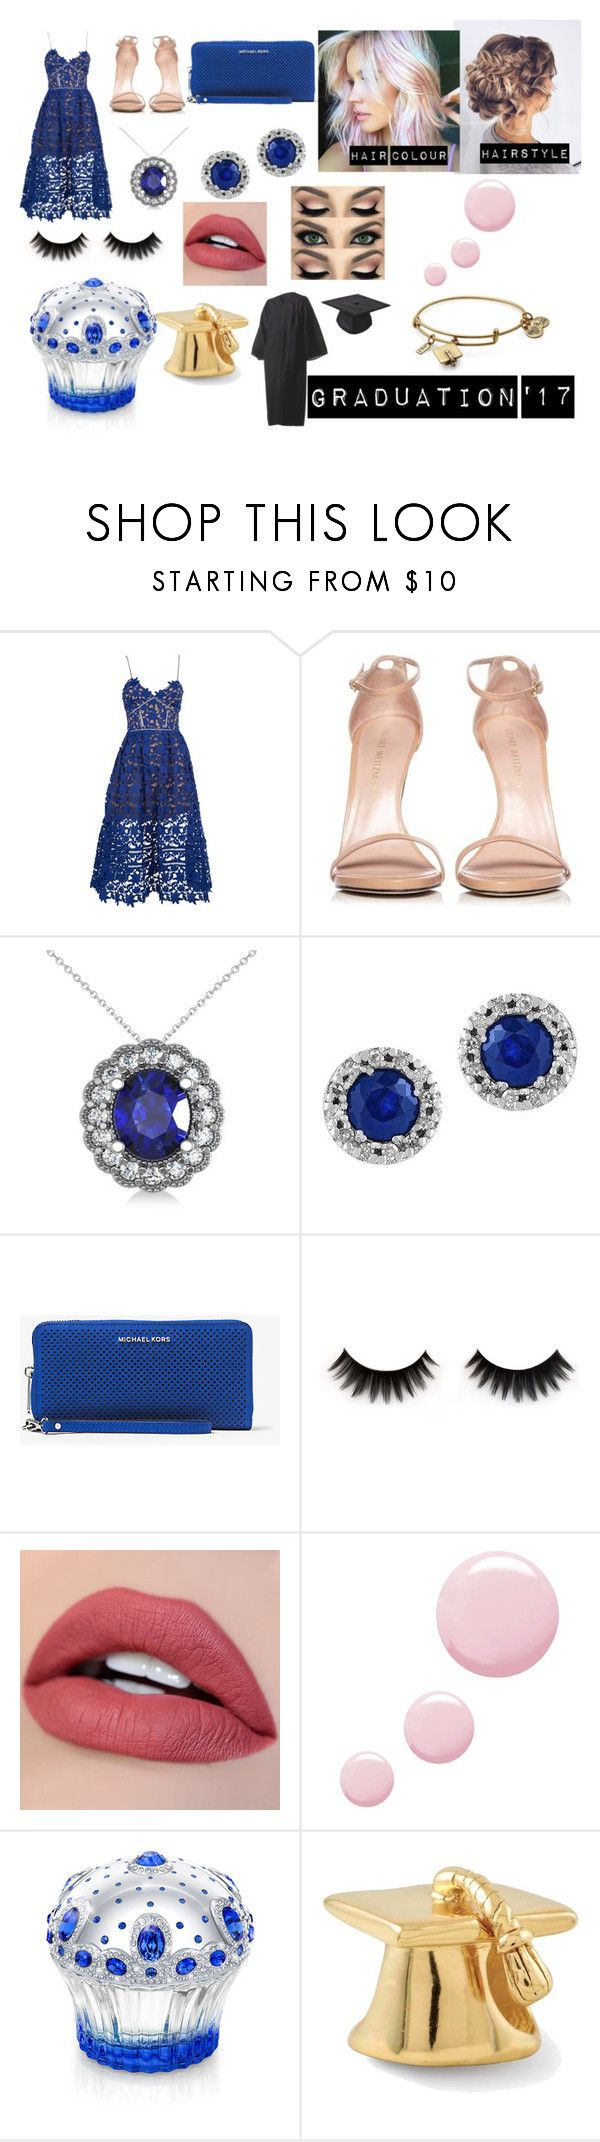 """""""GRADUATION'17"""" by swaggy4life ❤ liked on Polyvore featuring self-portrait, Stuart Weitzman, Allurez, Effy Jewelry, MICHAEL Michael Kors, Topshop, House of Sillage and Alex and Ani"""